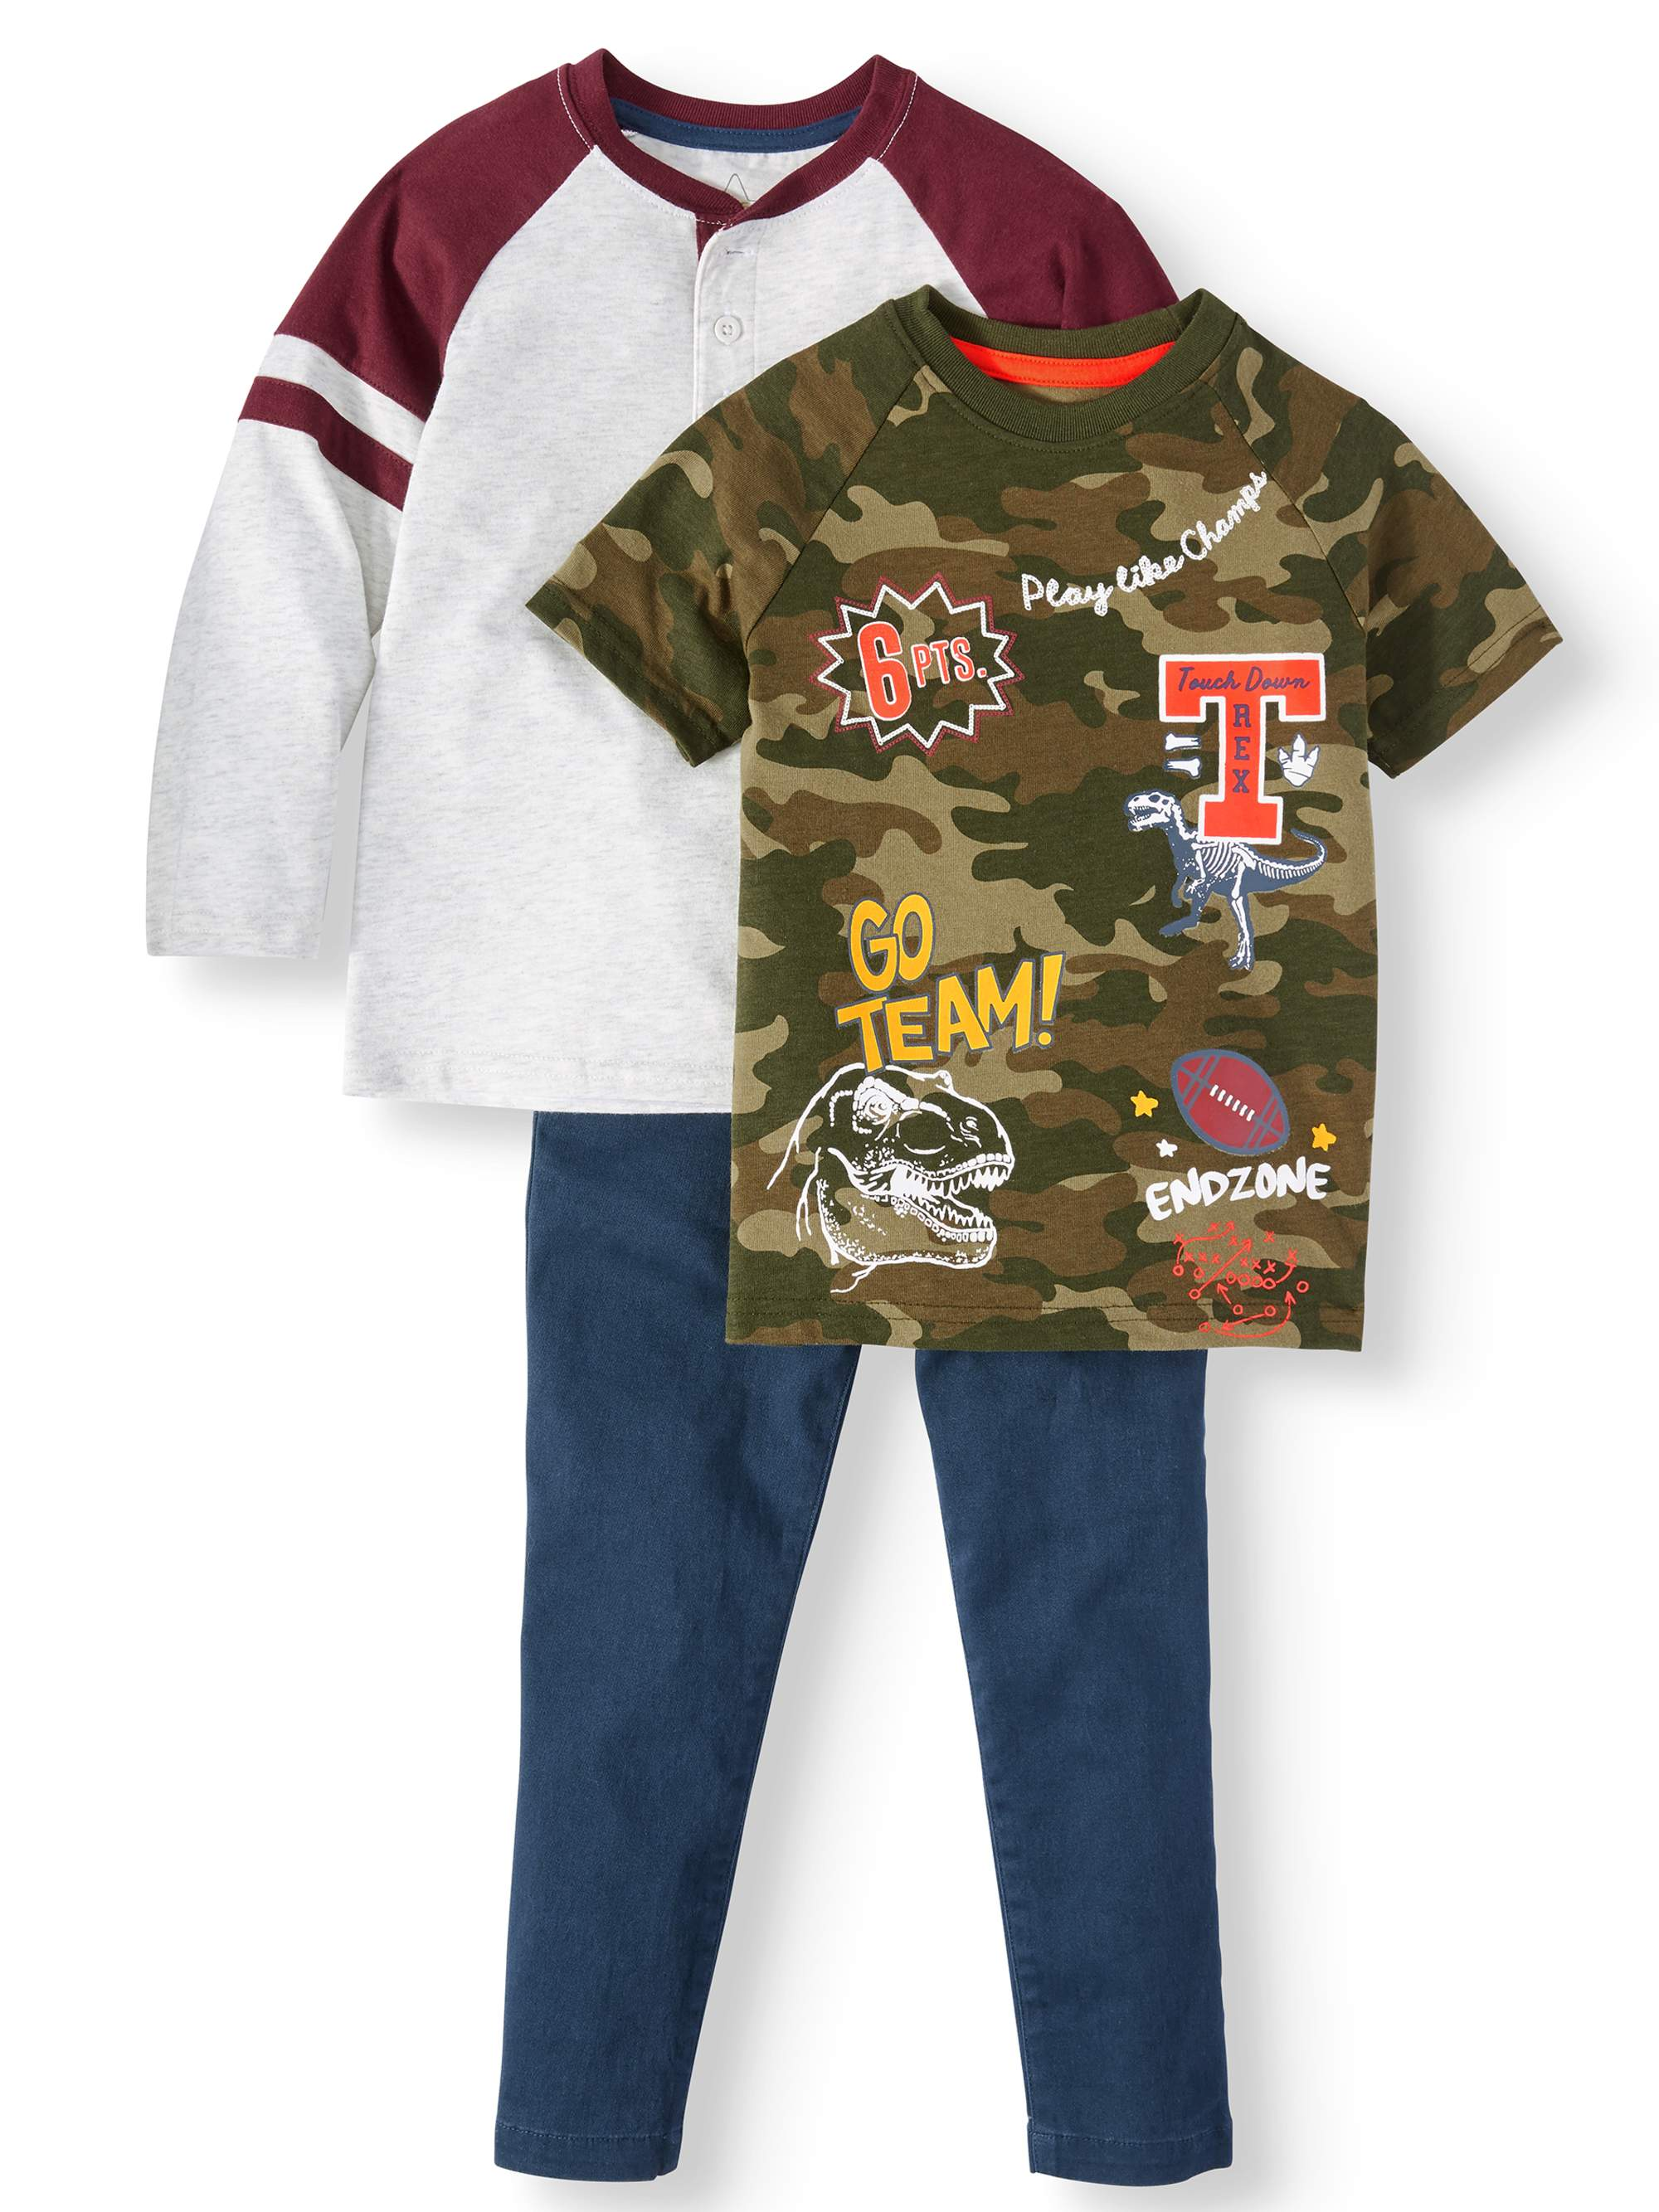 S1ope Boys Linked Savage 2-Piece Pants Set Outfit